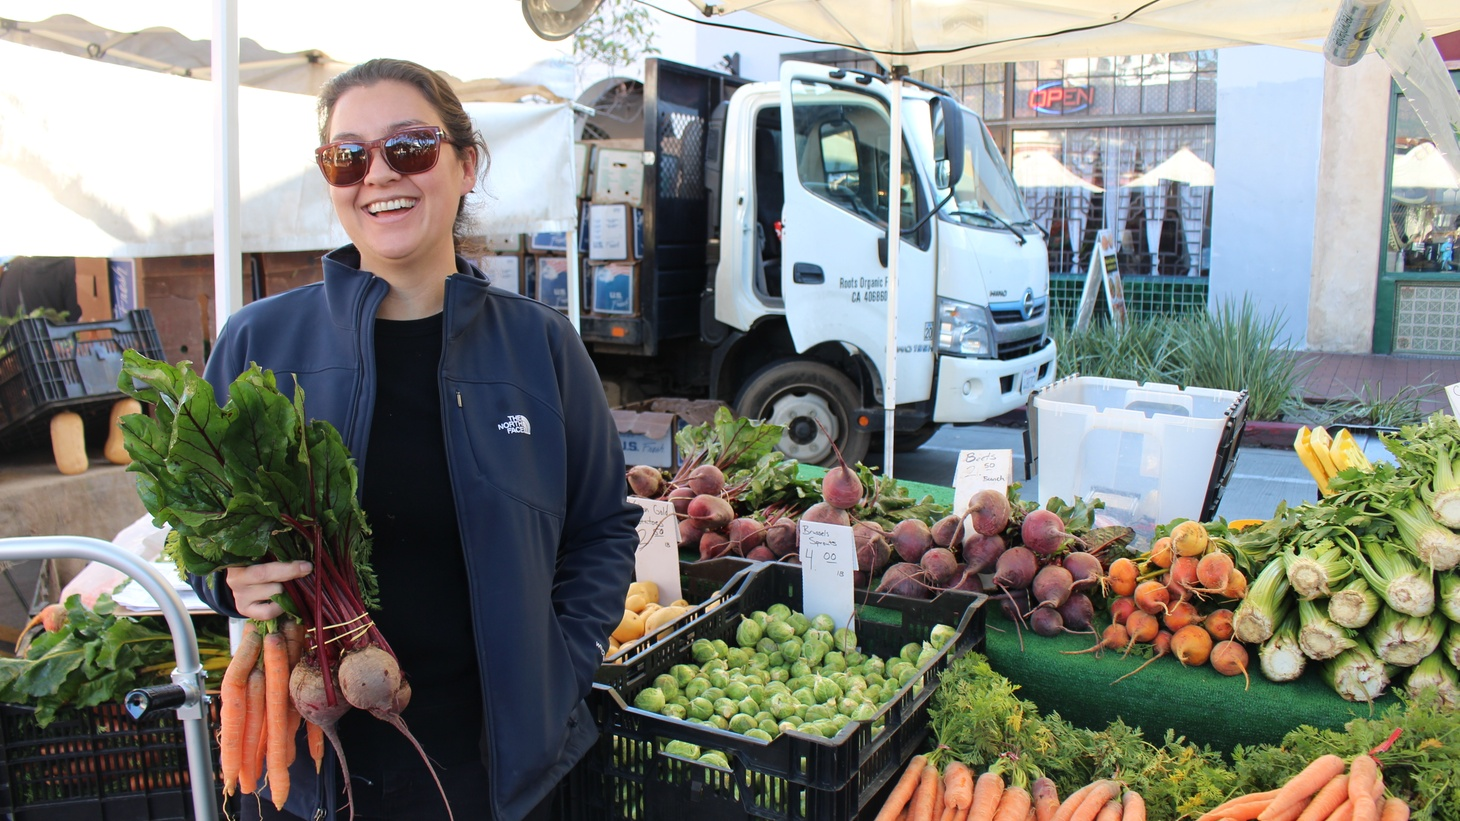 Christina Olufson picking up fresh ingredients to bring back to Bossie's.